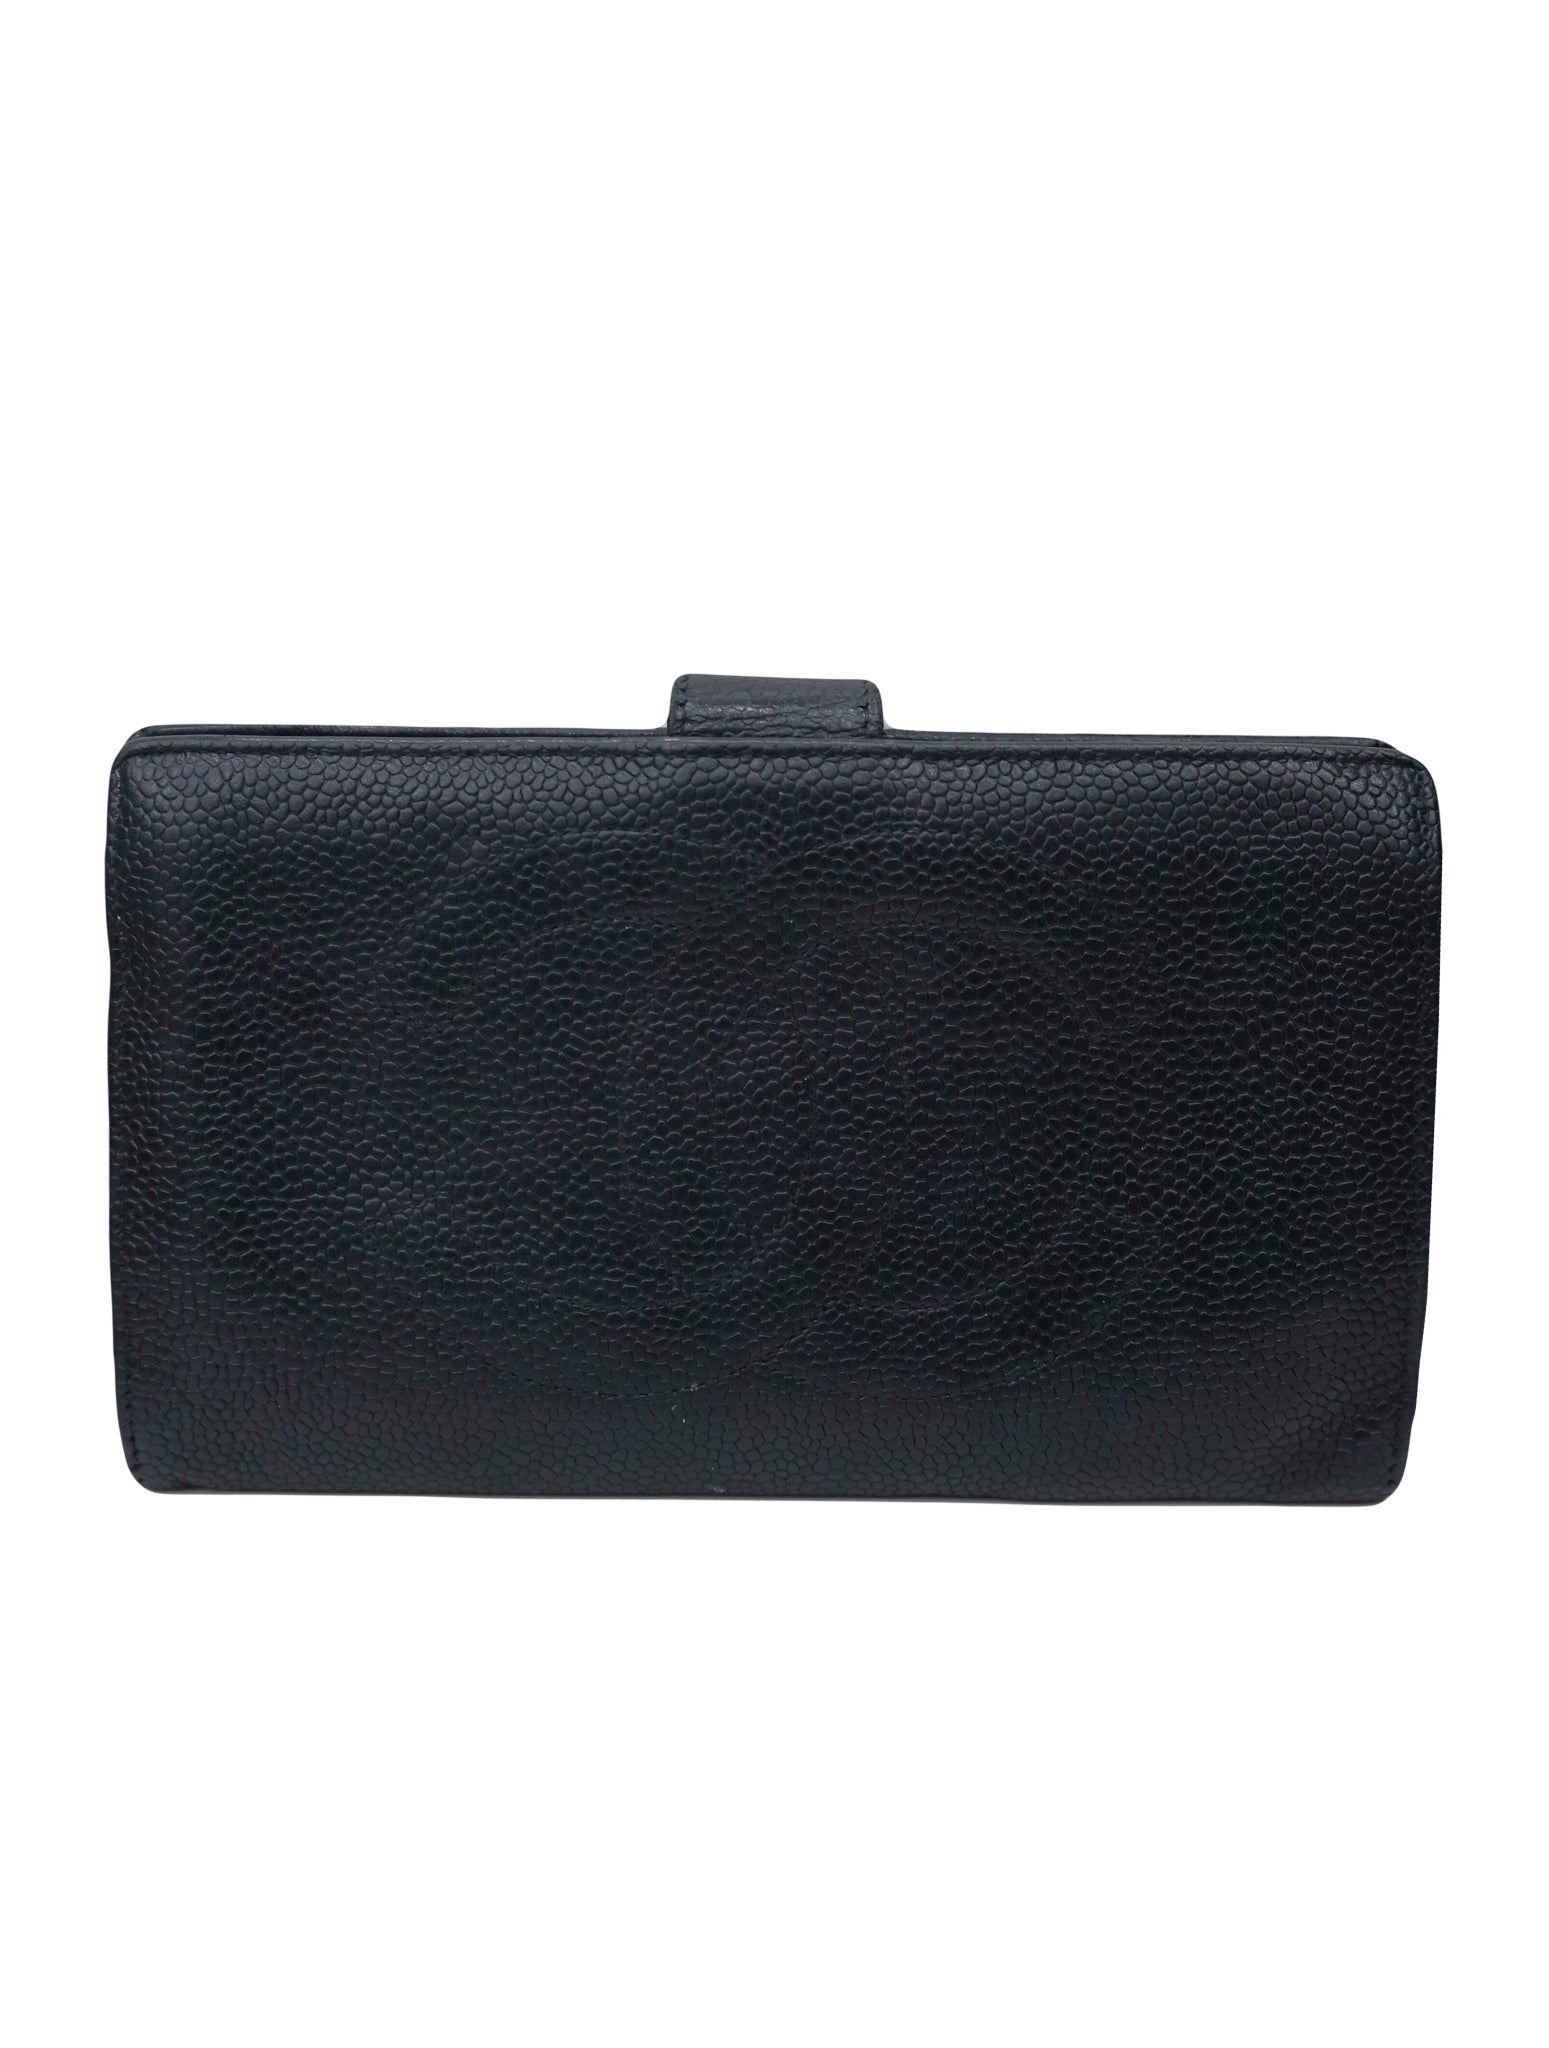 CAVIAR LEATHER CC BIFOLD WALLET